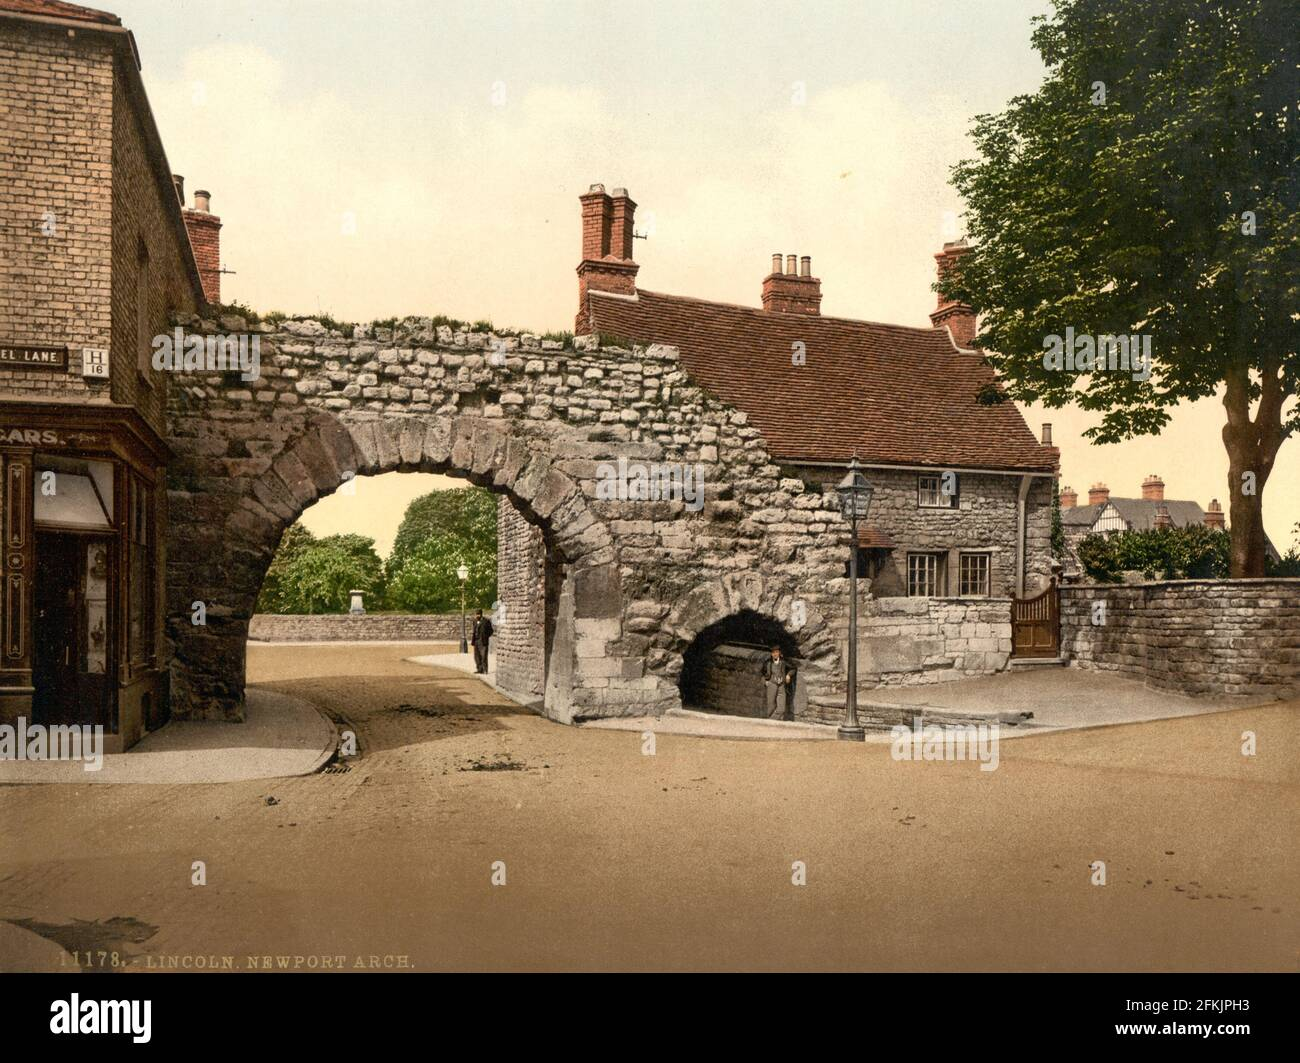 Newport Arch, Lincoln Lincoln vers 1890-1900 Banque D'Images